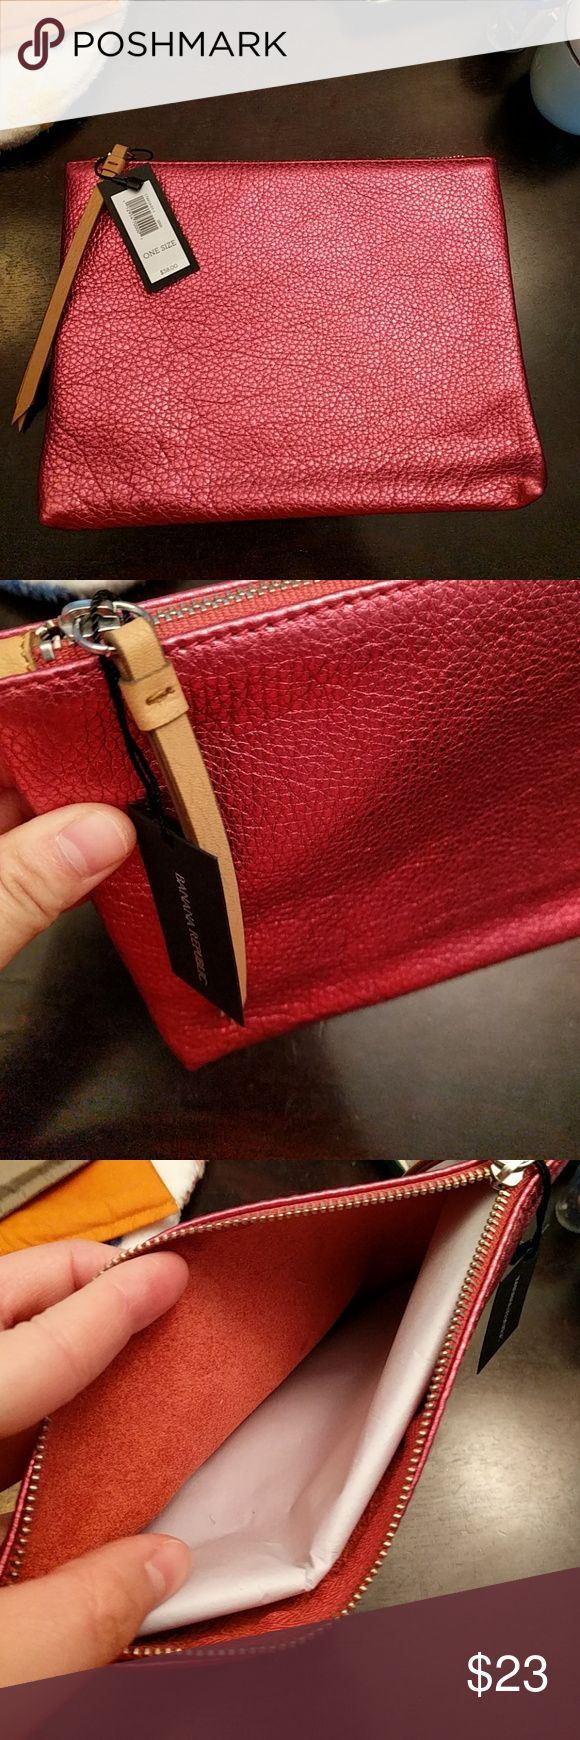 Banana Republic pouch (pink or orange) NWT pink shimmer or shimmer orange BR pouch.  Perfect thing to hold your cosmetics and great organizer to keep your small items together in a big tote bag. Faux leather zipper accent. Banana Republic Bags Cosmetic Bags & Cases